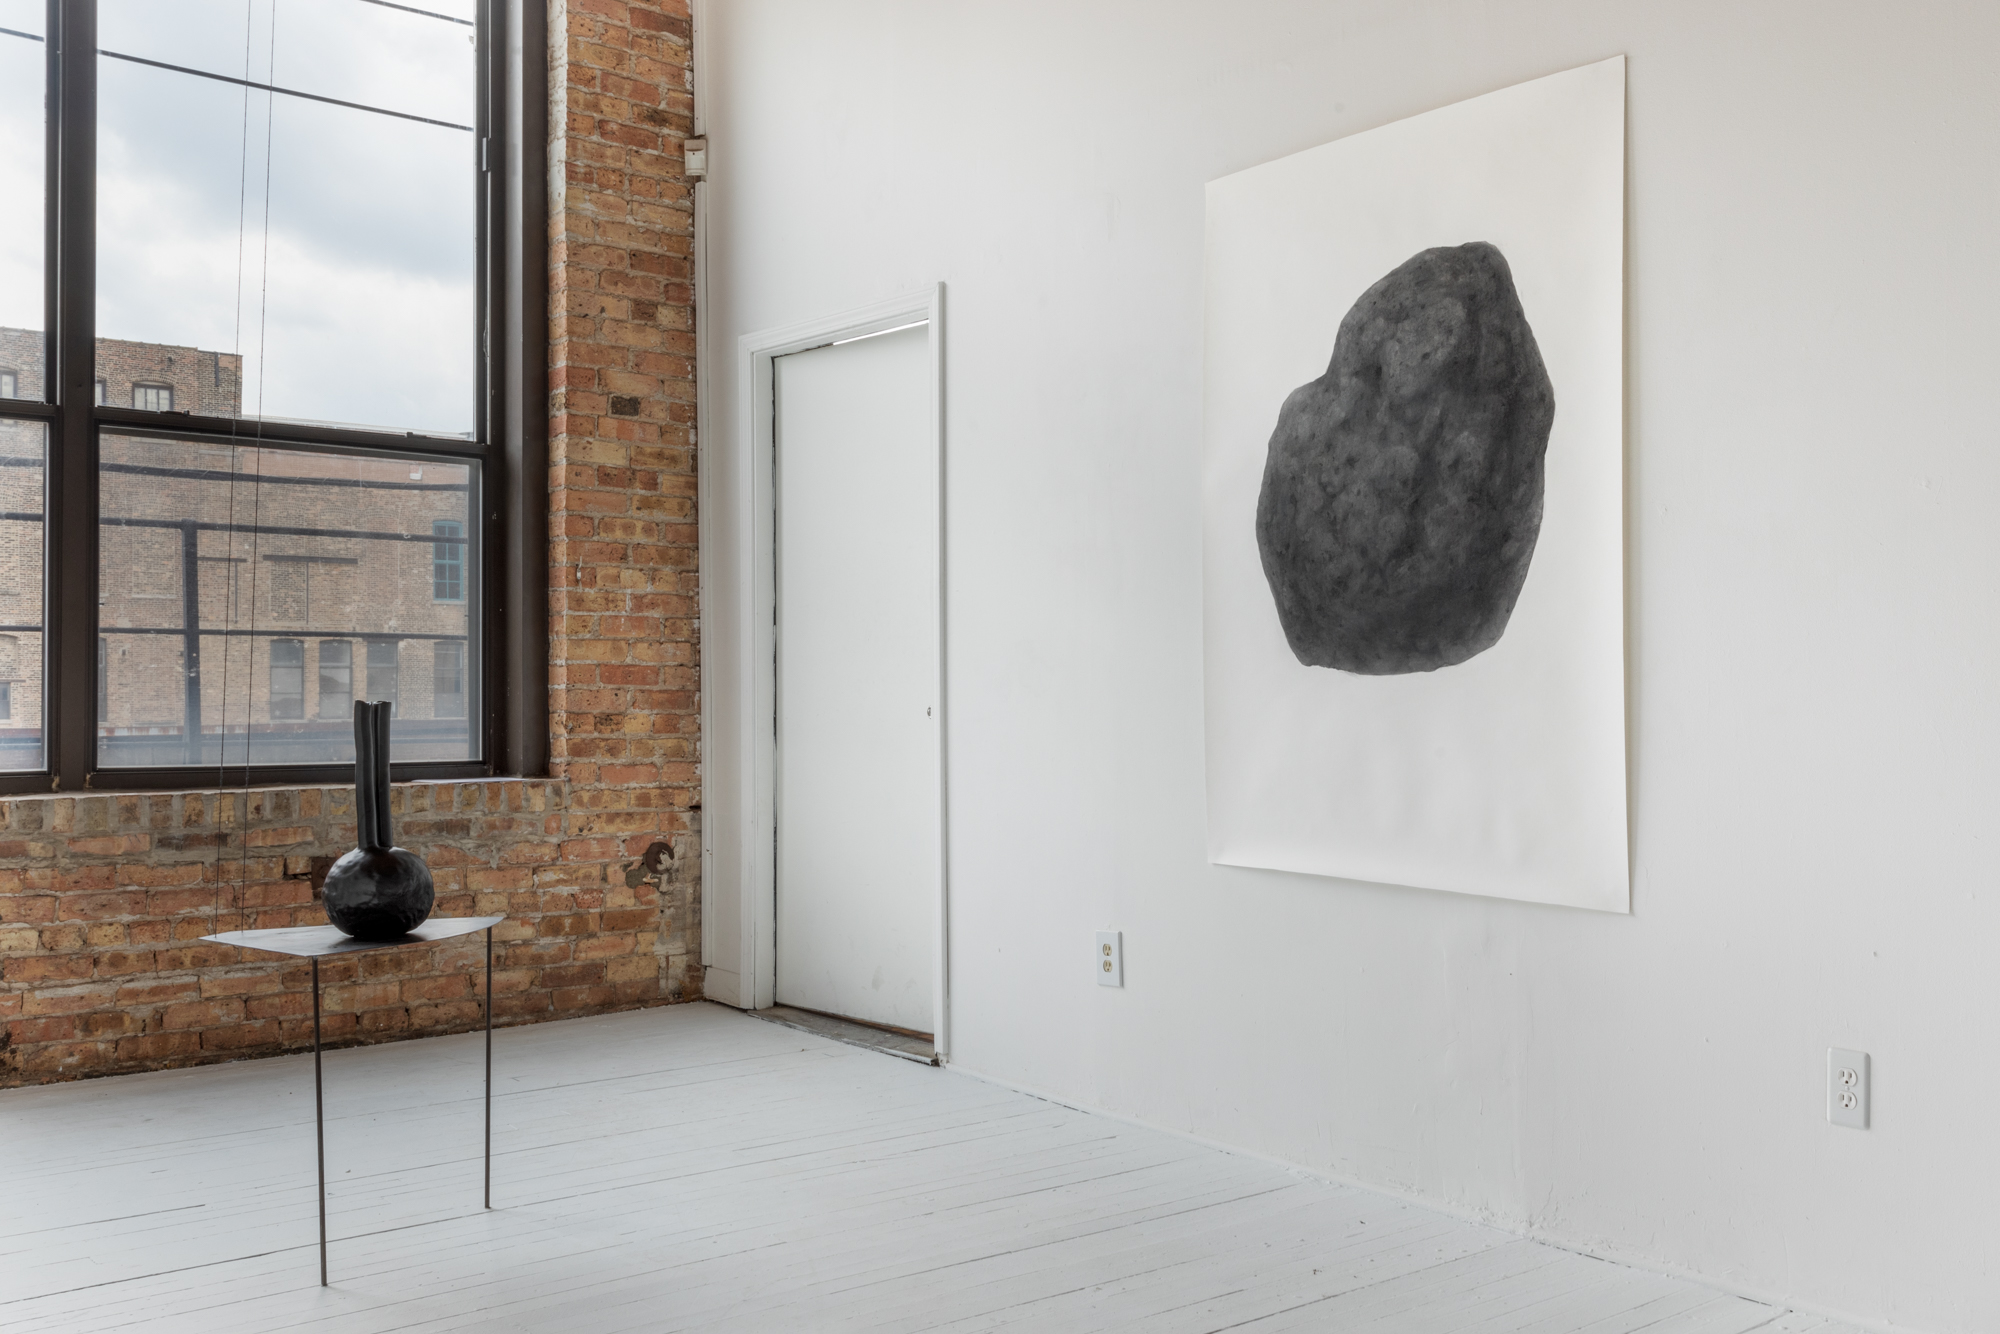 """Soo Shin, Install view of 'A Collection of Tears 2012-Present' at Bar 4000 Gallery, 2019  (right_Soo Shin\Enlargement of Concrete Tear) \ graphite and charcoal on paper\ h 68"""" w 48""""\ 2019 (Photo credit Bar4000/Evan Jenkins)"""